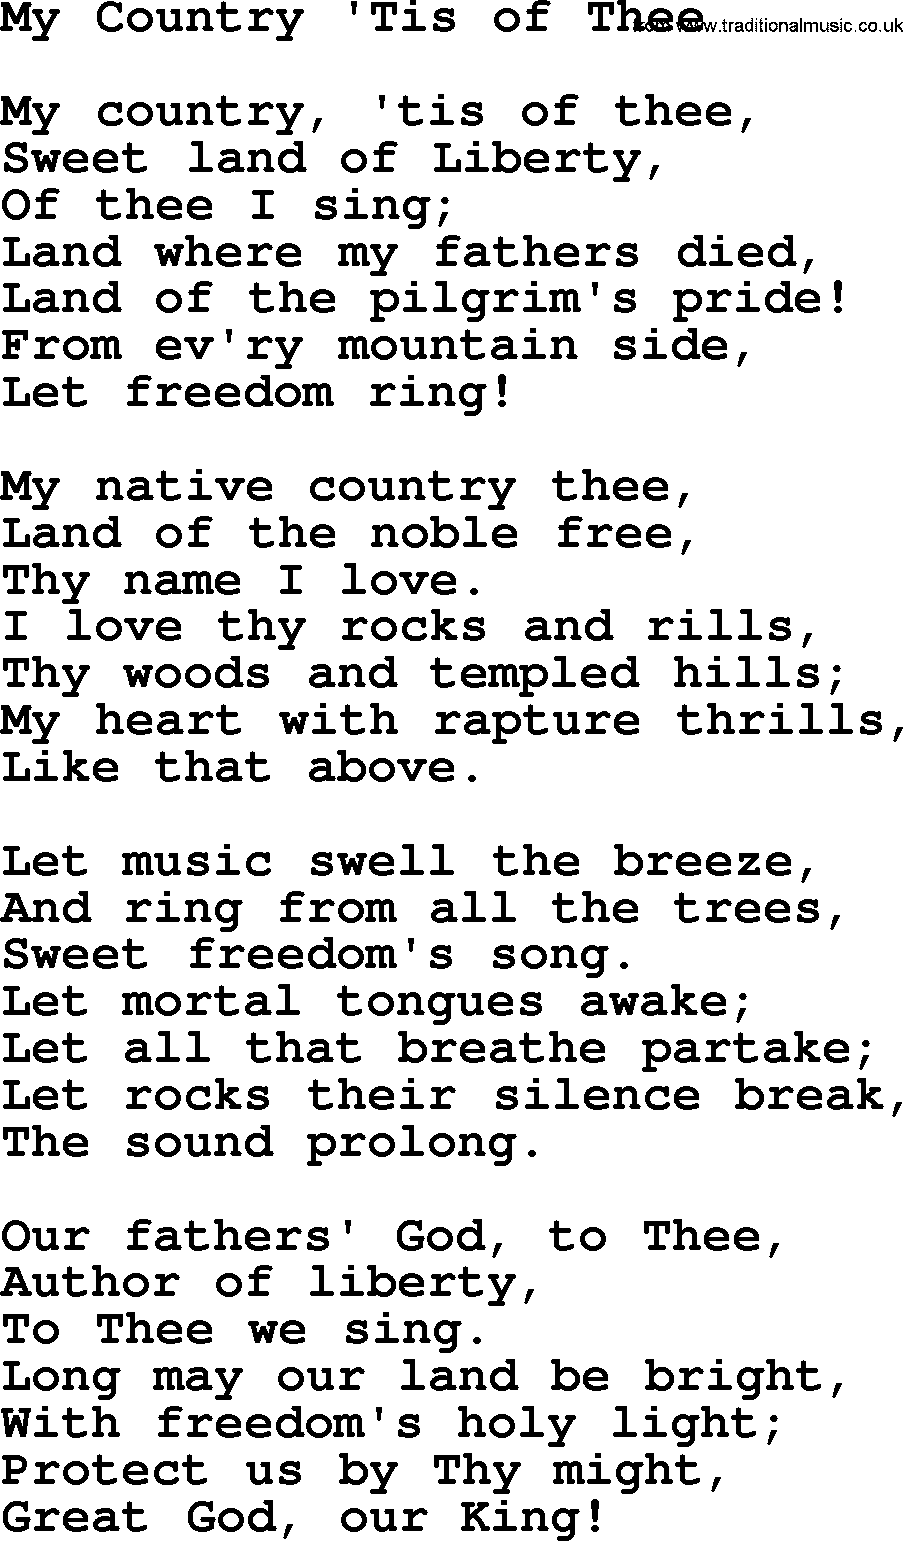 Baptist Hymnal Christian Song My Country Tis Of Thee